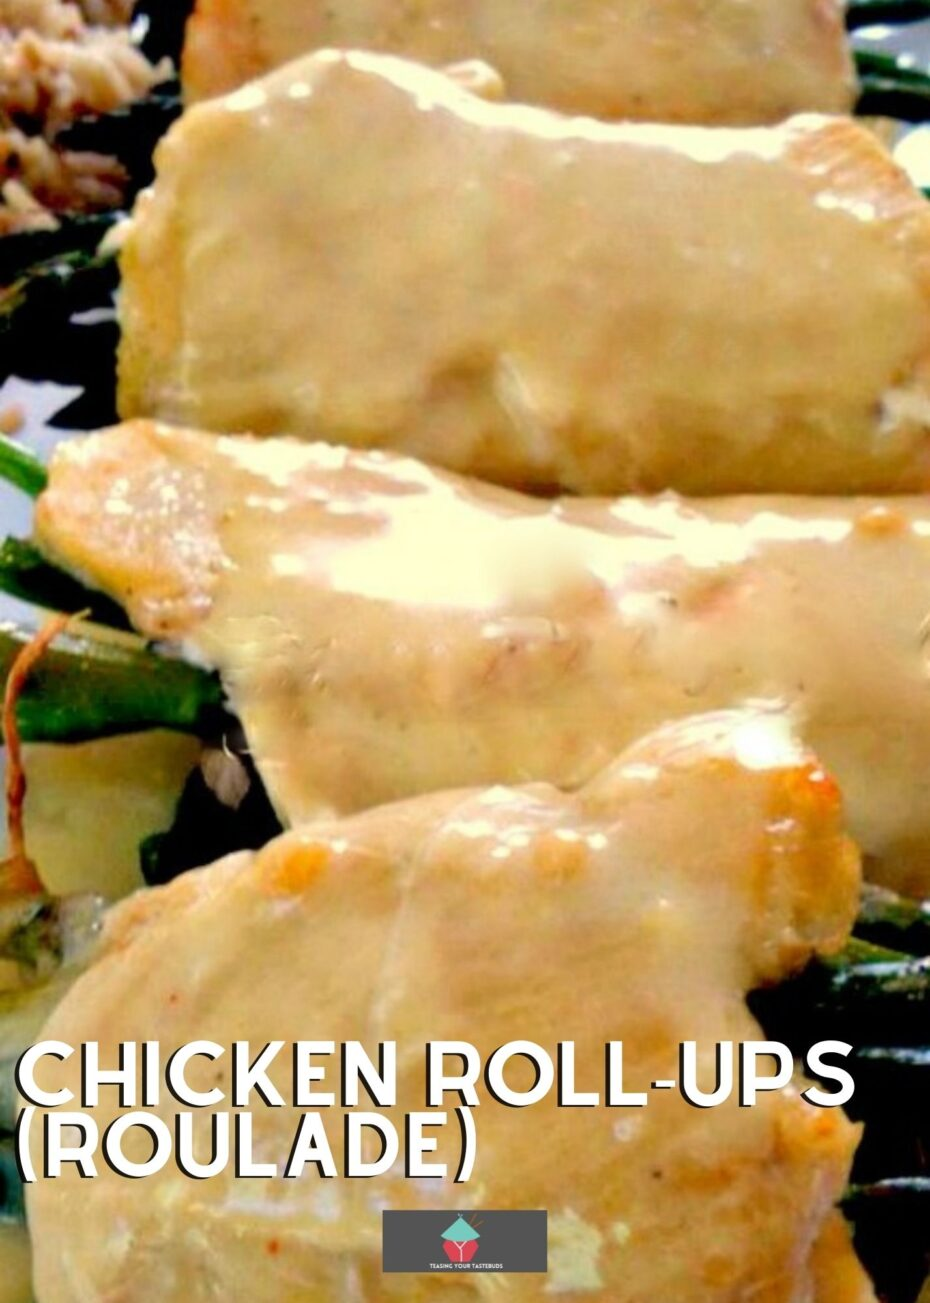 Chicken Roll-Ups (roulade), tender pieces of chicken filled with spinach, asparagus, mushrooms, and cheese then rolled and baked, and served with a creamy Hollandaise sauce and easy mushroom pilaf rice.